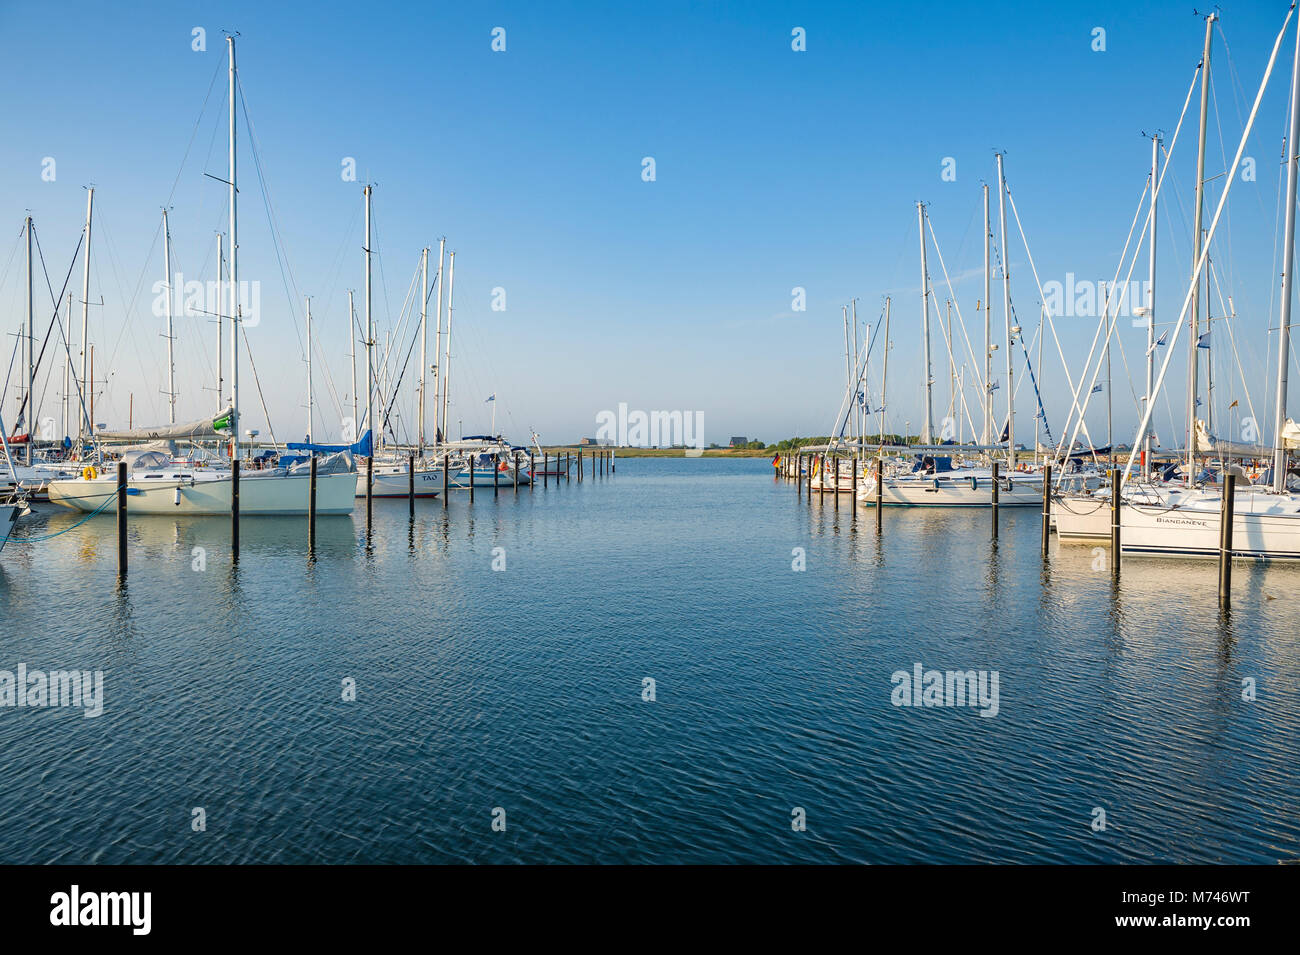 Marina, Heiligenhafen, Baltic Sea, Schleswig-Holstein, Germany, Europe Stock Photo